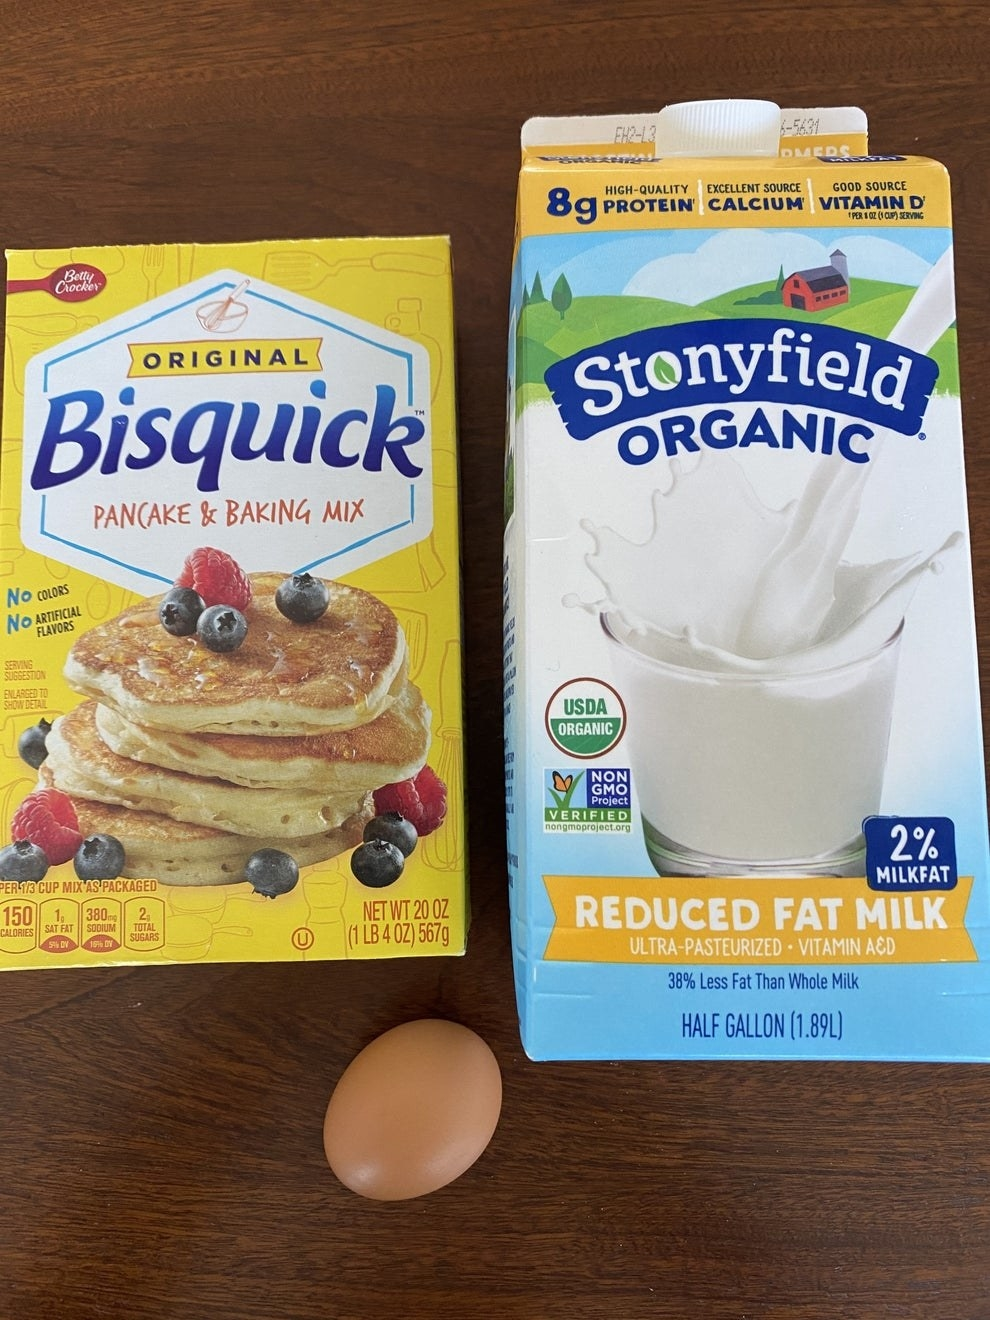 Bisquick pancake mix, milk, and an egg for making batter.